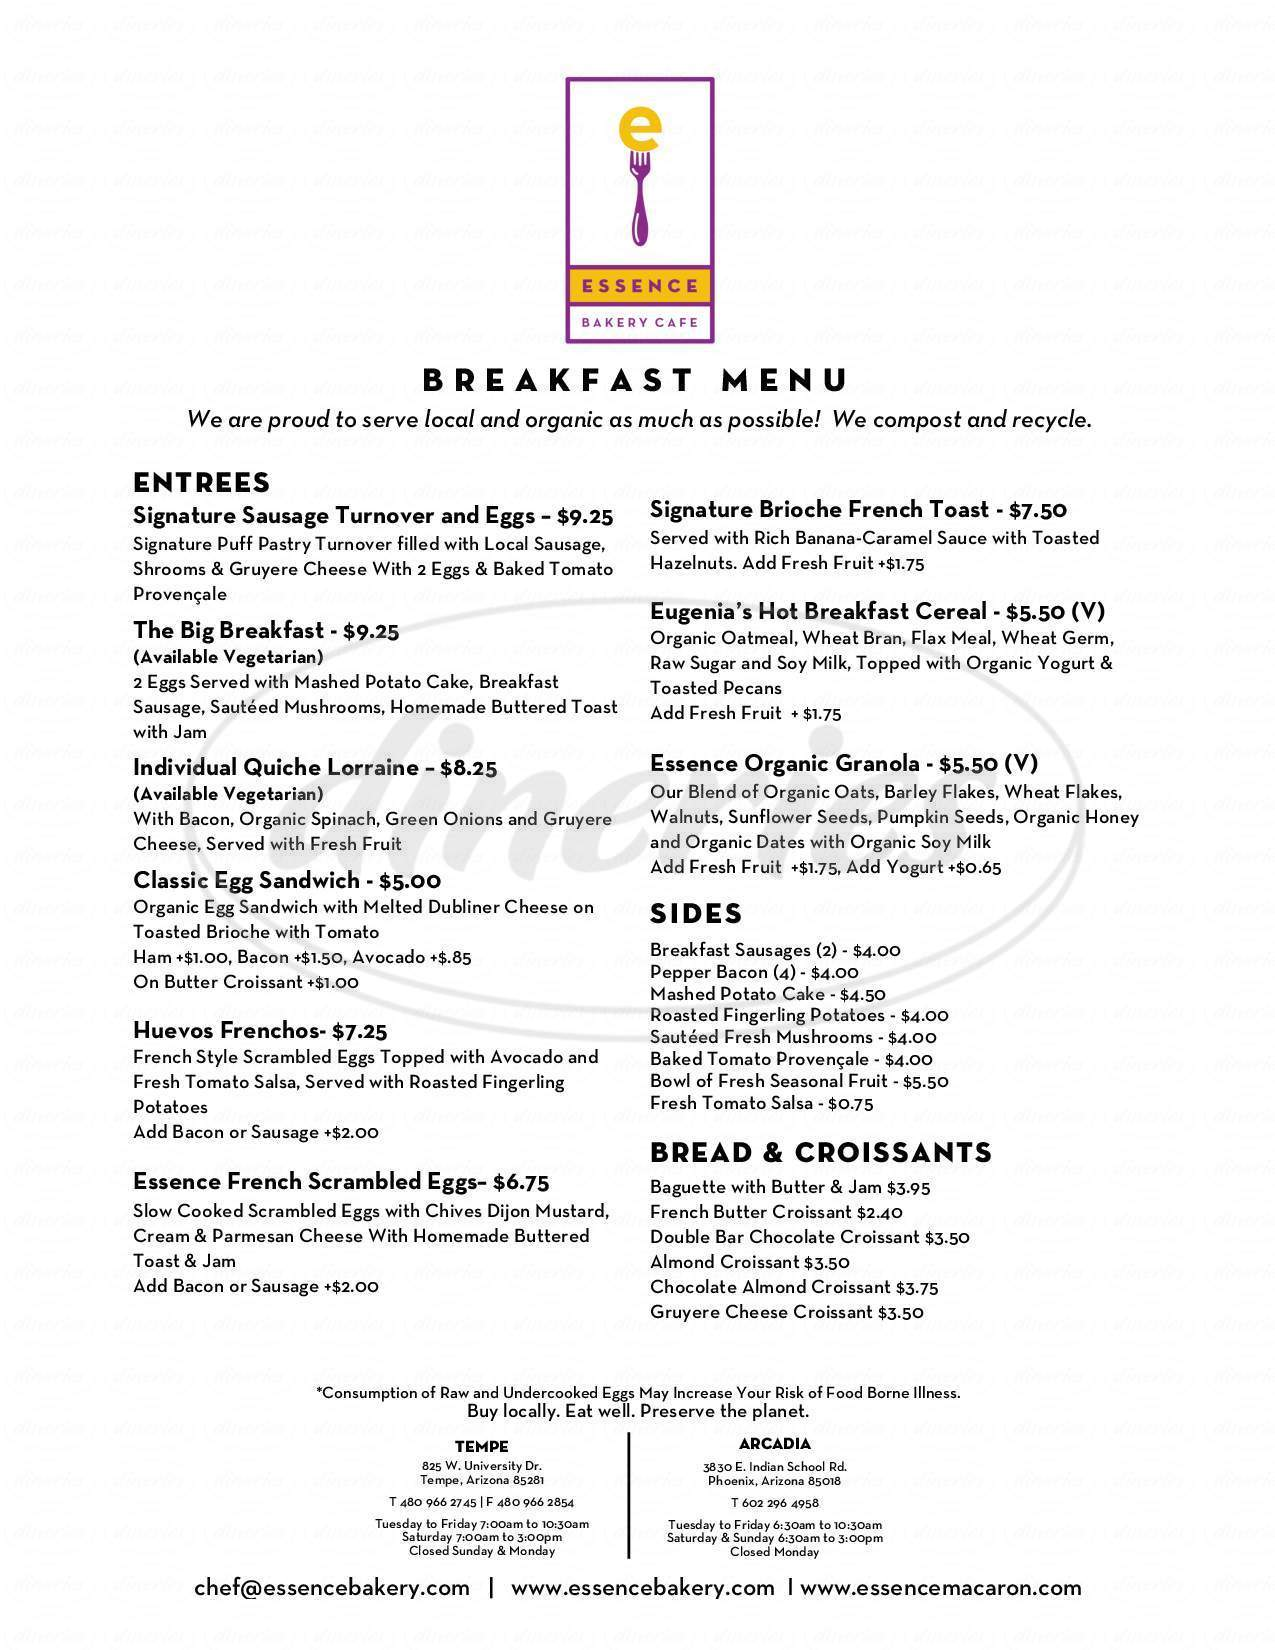 menu for Essence Bakery Cafe